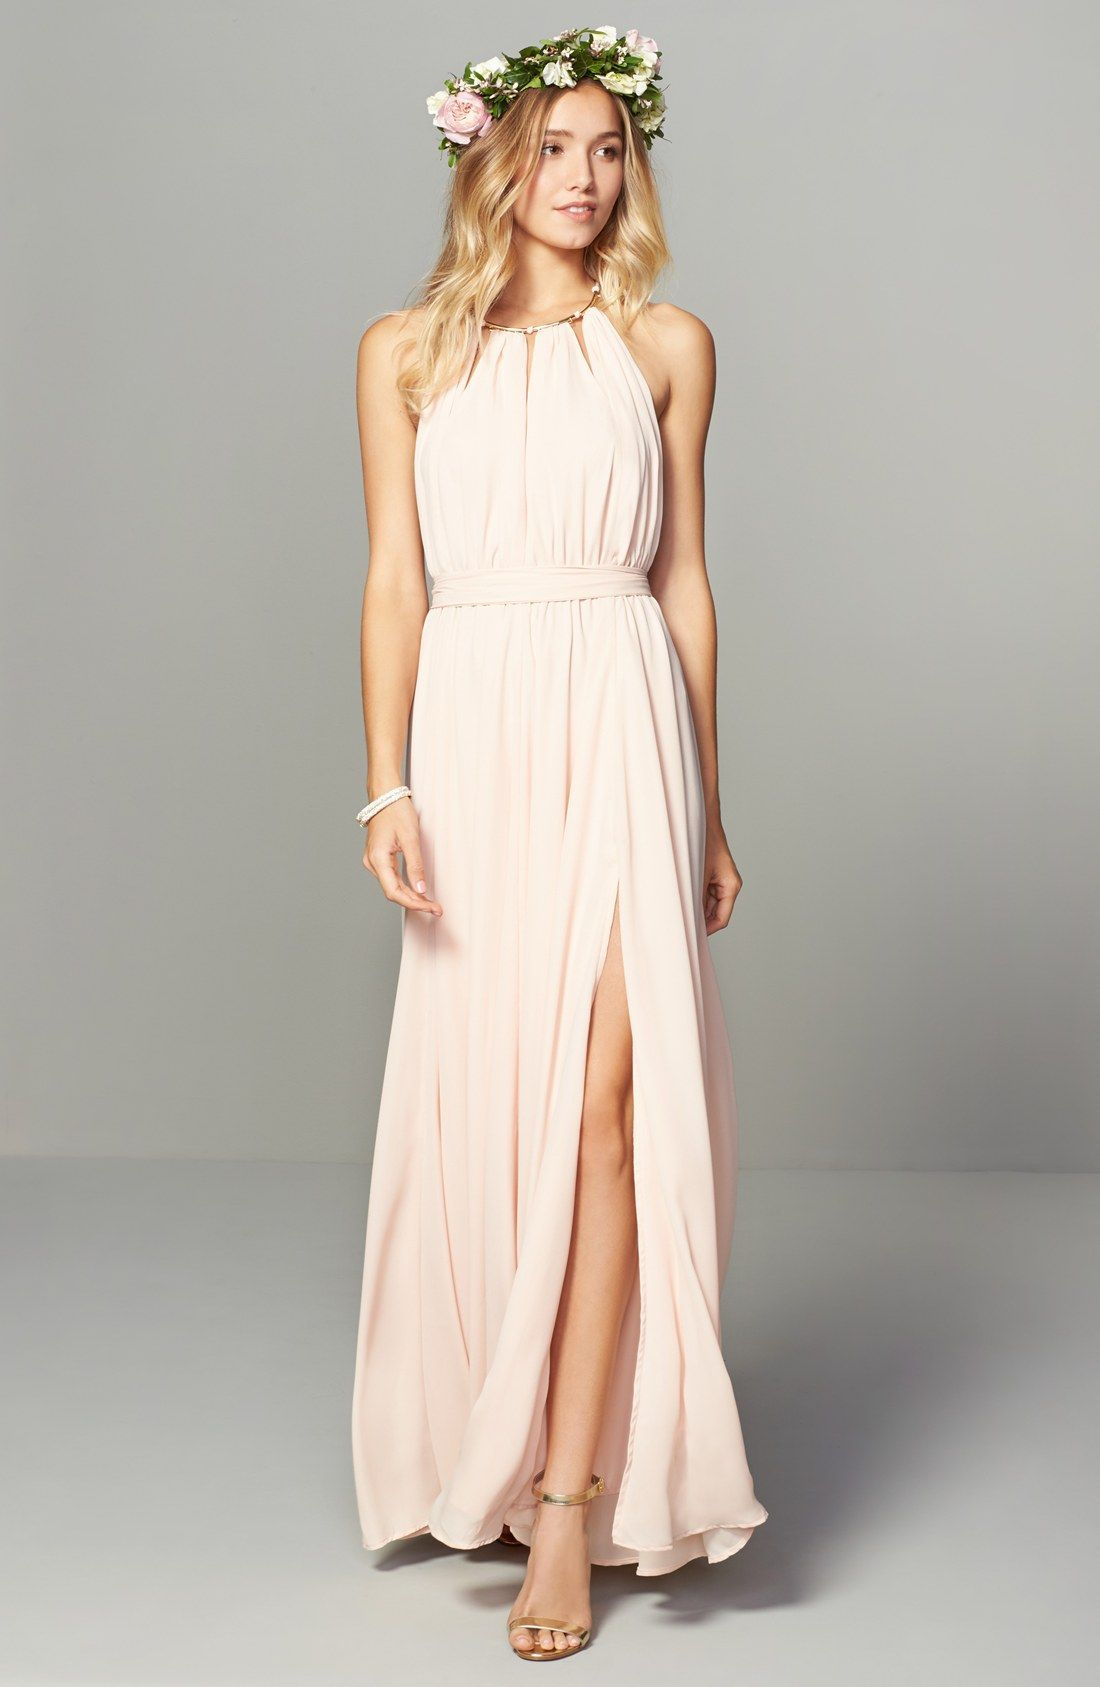 Pretty pink bridesmaid dresses for wedding parties and pink themed